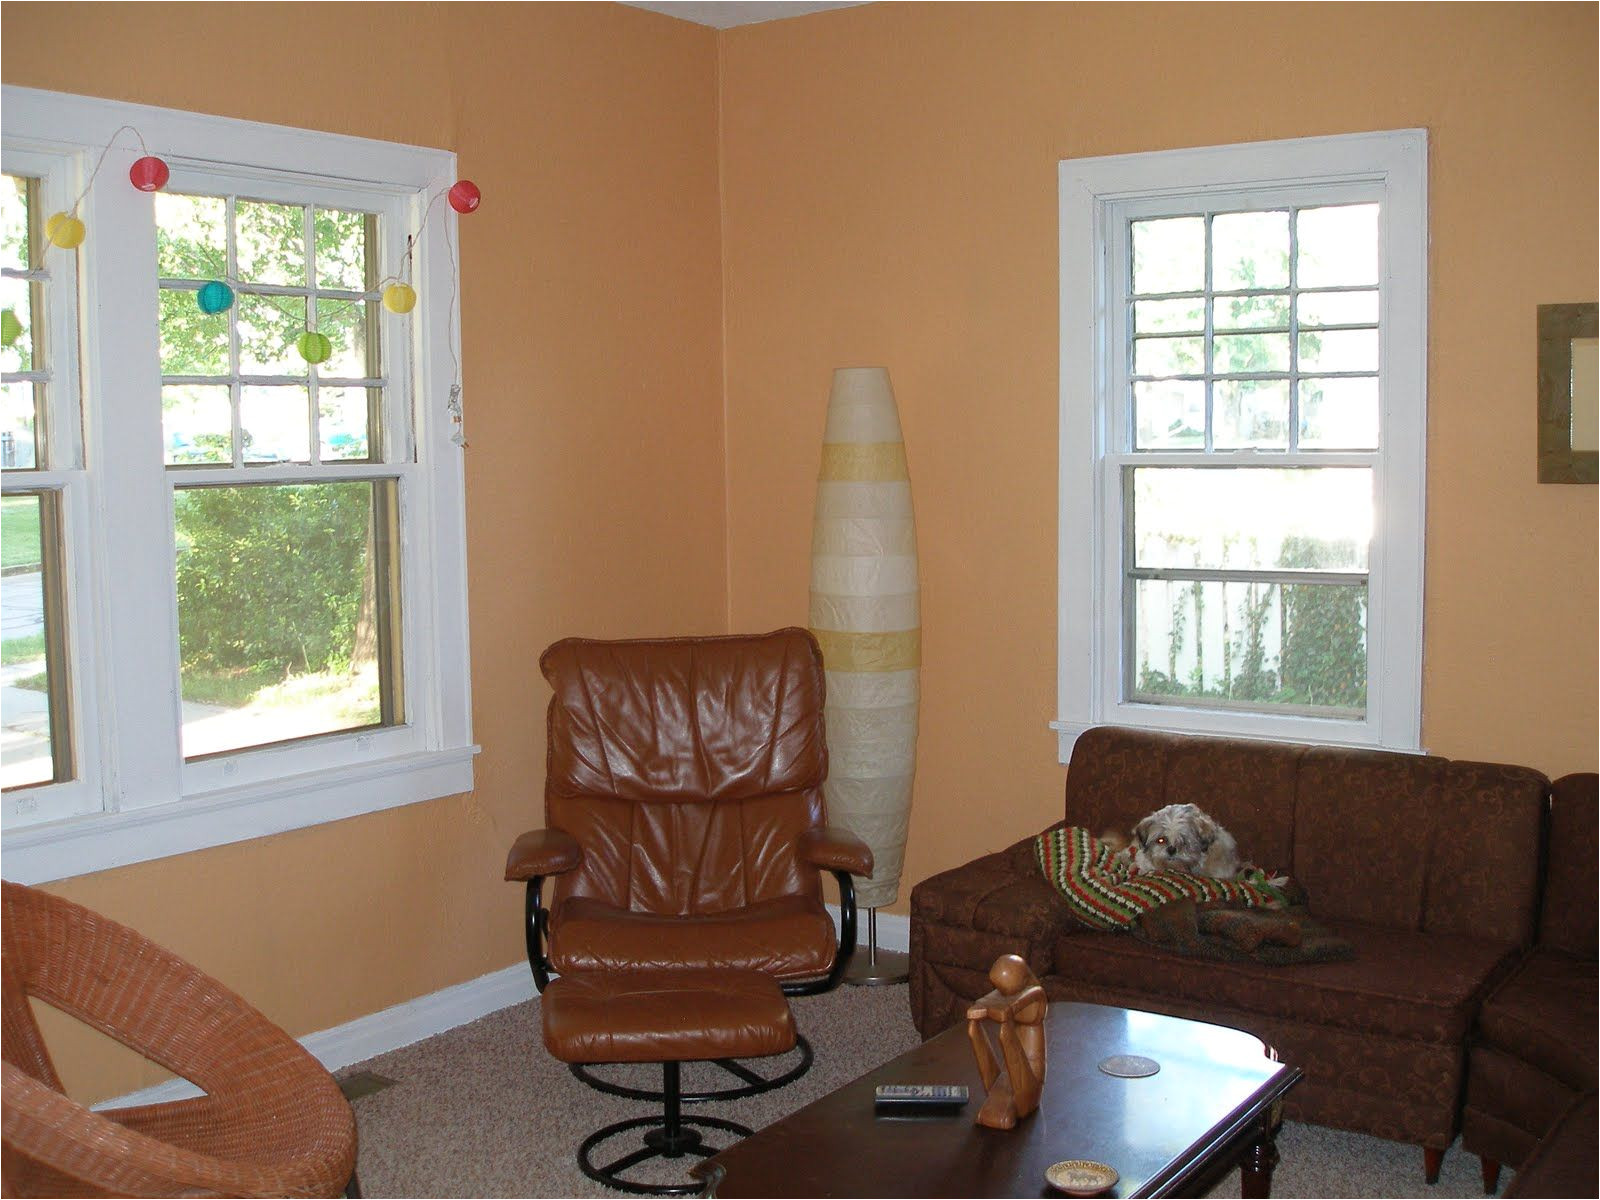 benjamin moore s ansonia peach okay while i m not particularly fond of this color it is the room that this color doesn t fit in